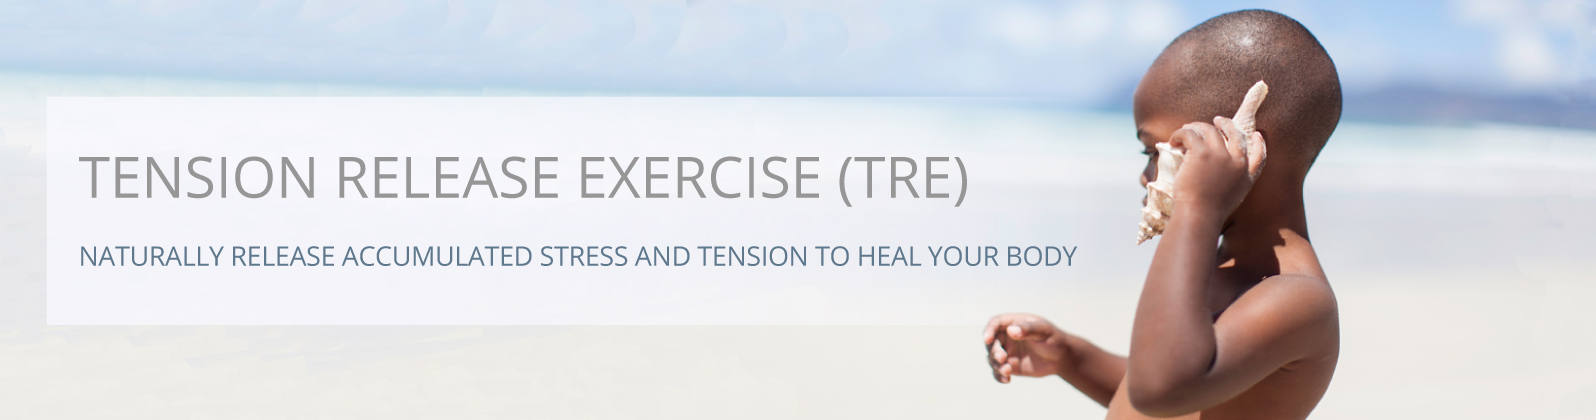 1-TENSION-RELEASE-EXERCISE-(TRE)